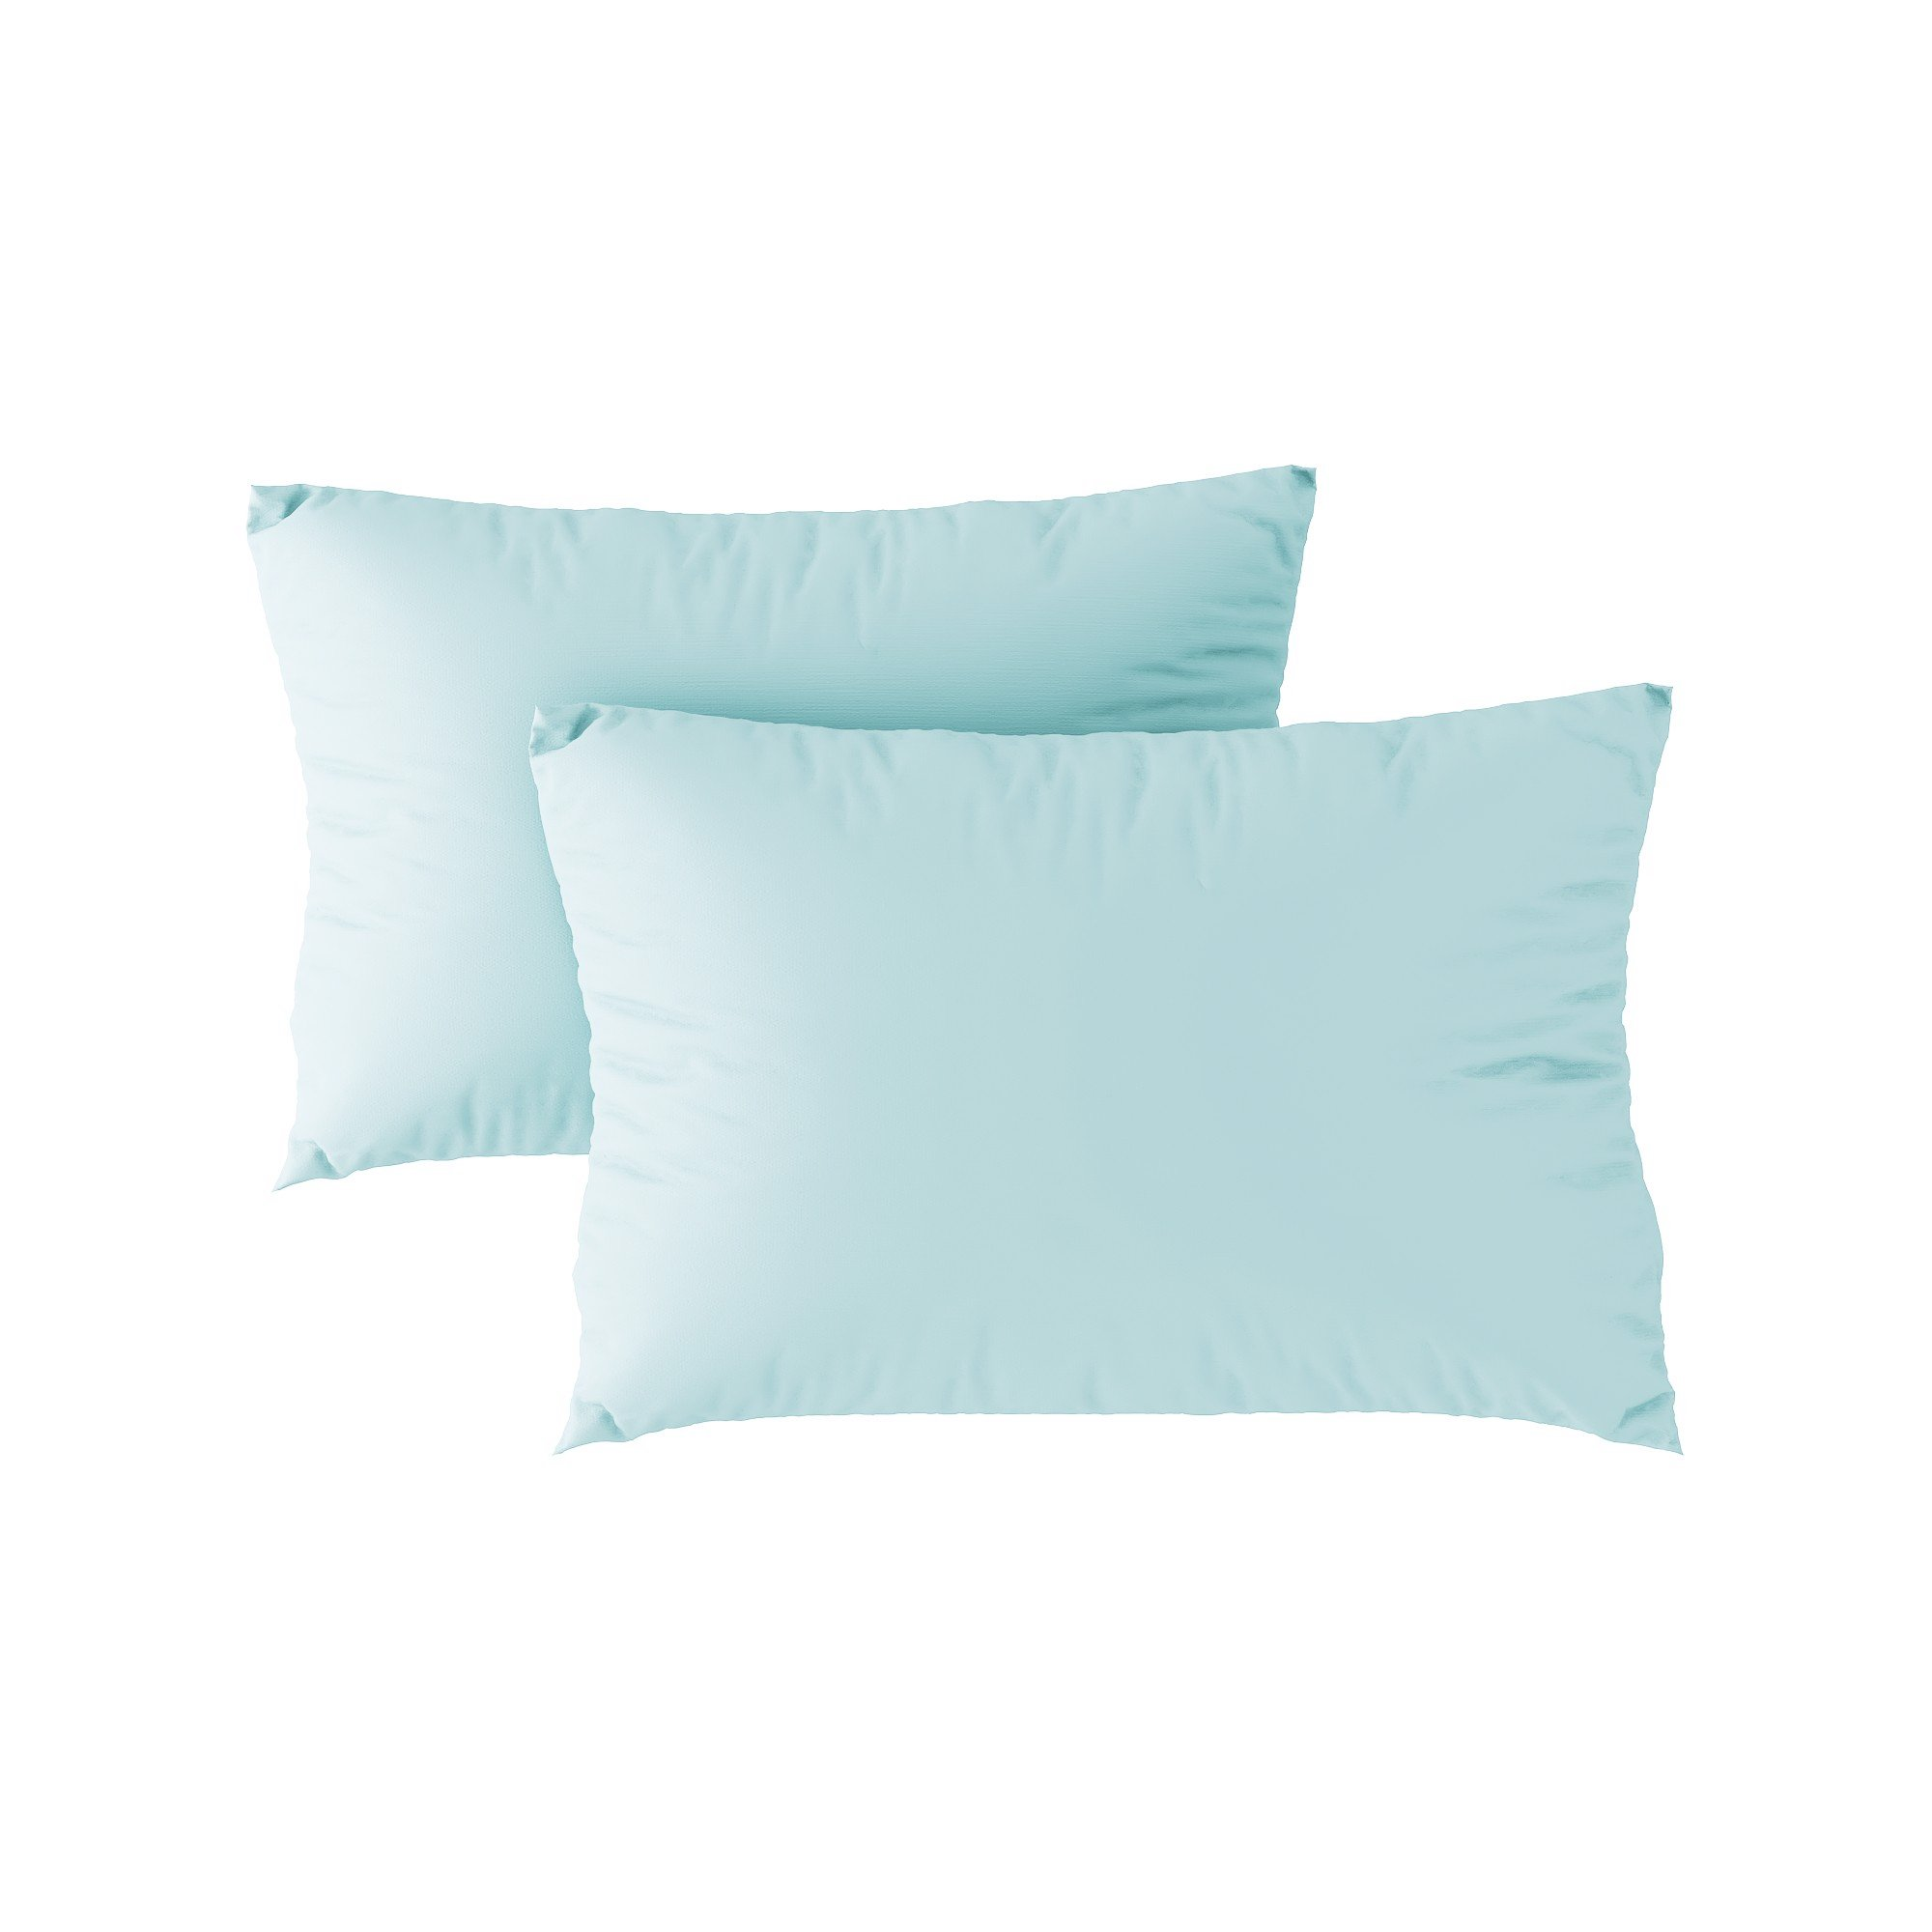 Standard pillow case 06 Mint (2pcs)